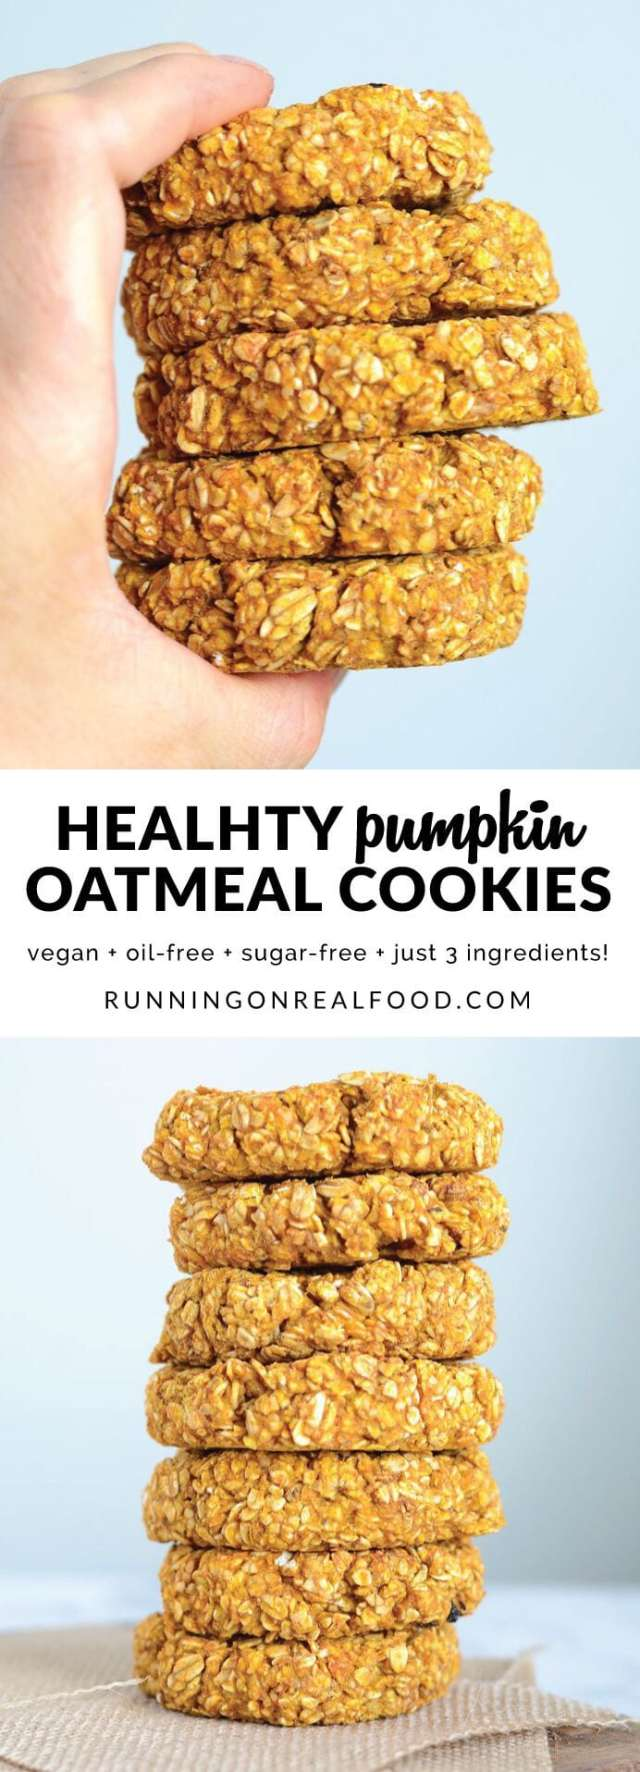 Pumpkin Spice Recipes: Healthy Pumpkin Oatmeal Cookies